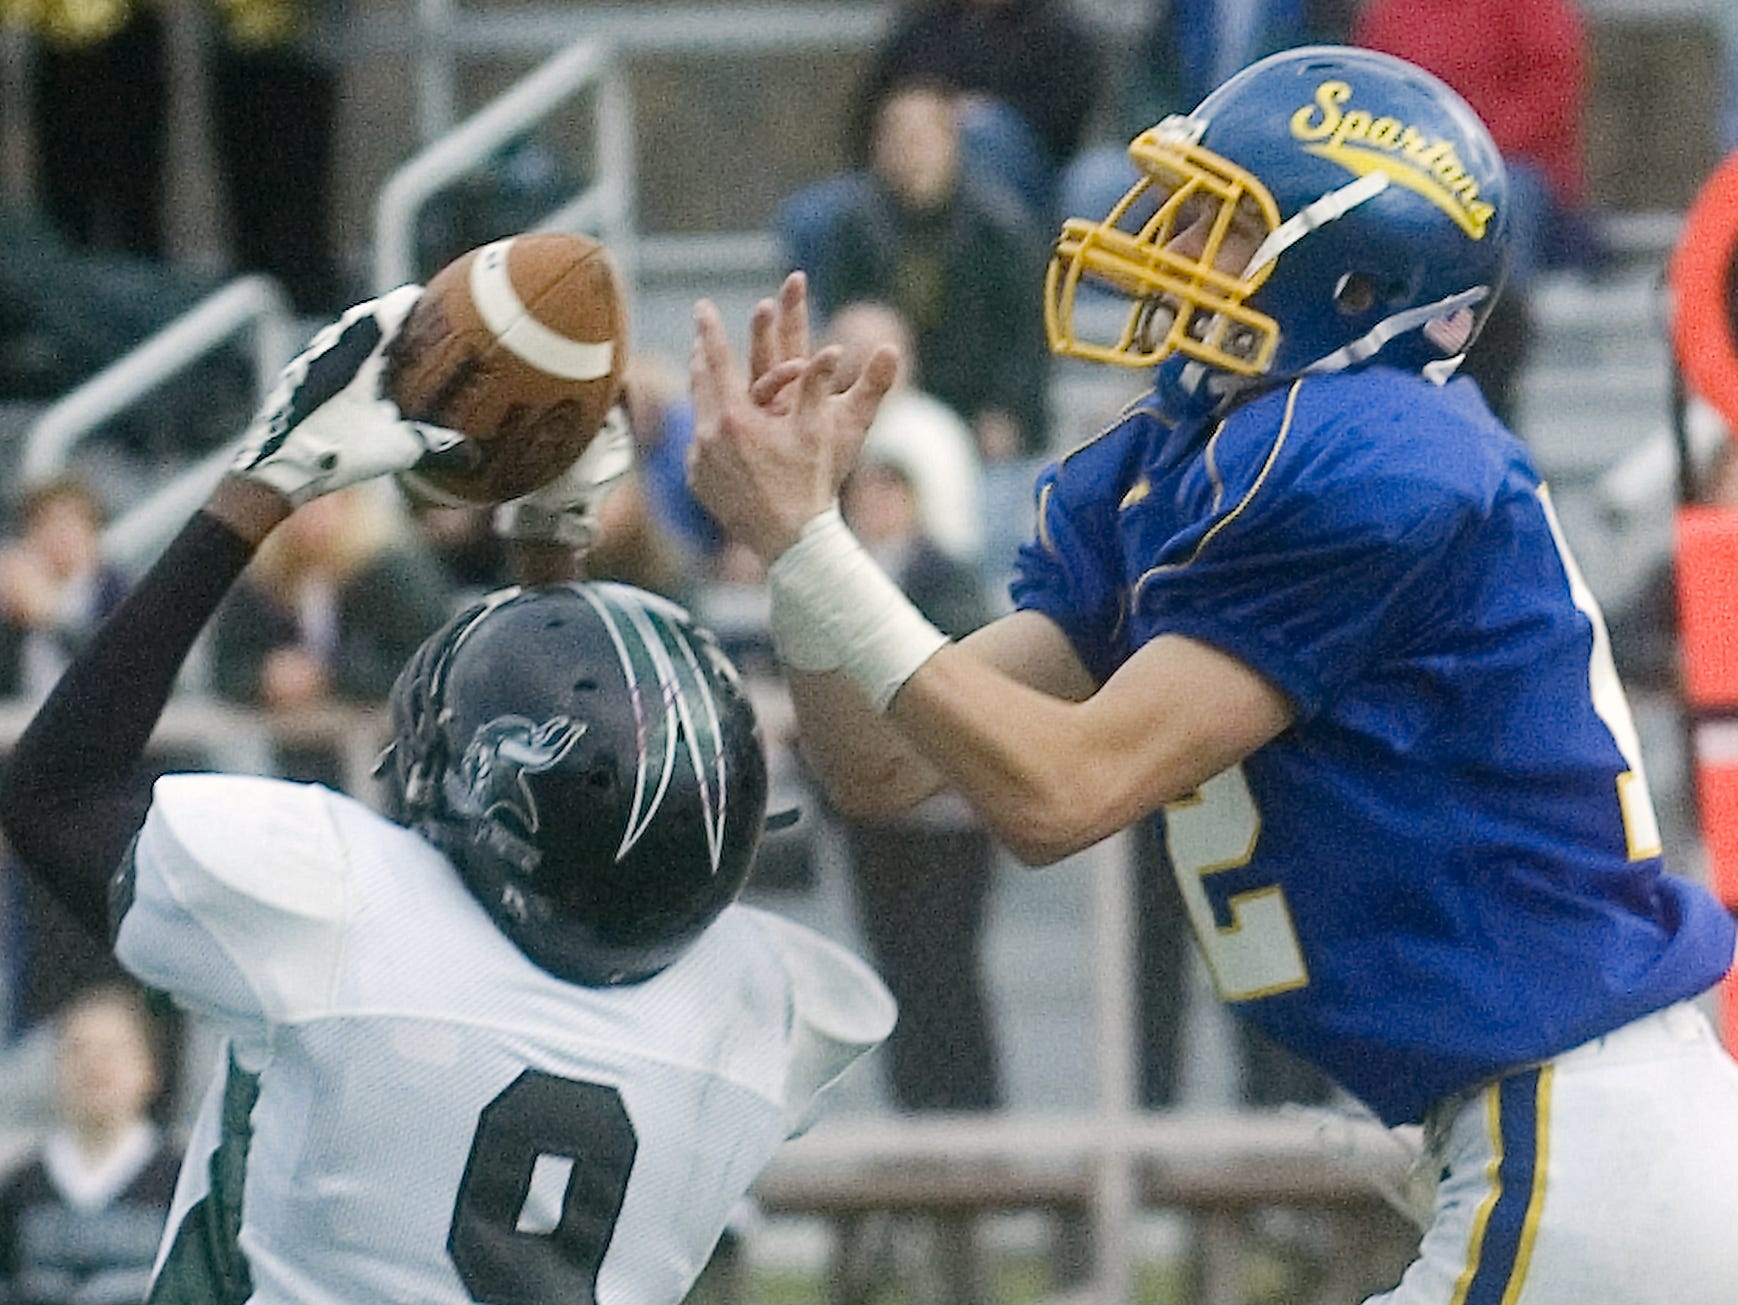 Corning West's D.J. Veasey, left, picks of what would have been the go-ahead touchdown pass intended for Maine-Endwell's Tom Connolly in the fourth quarter of a 2008 game at Ty Cobb Stadium.